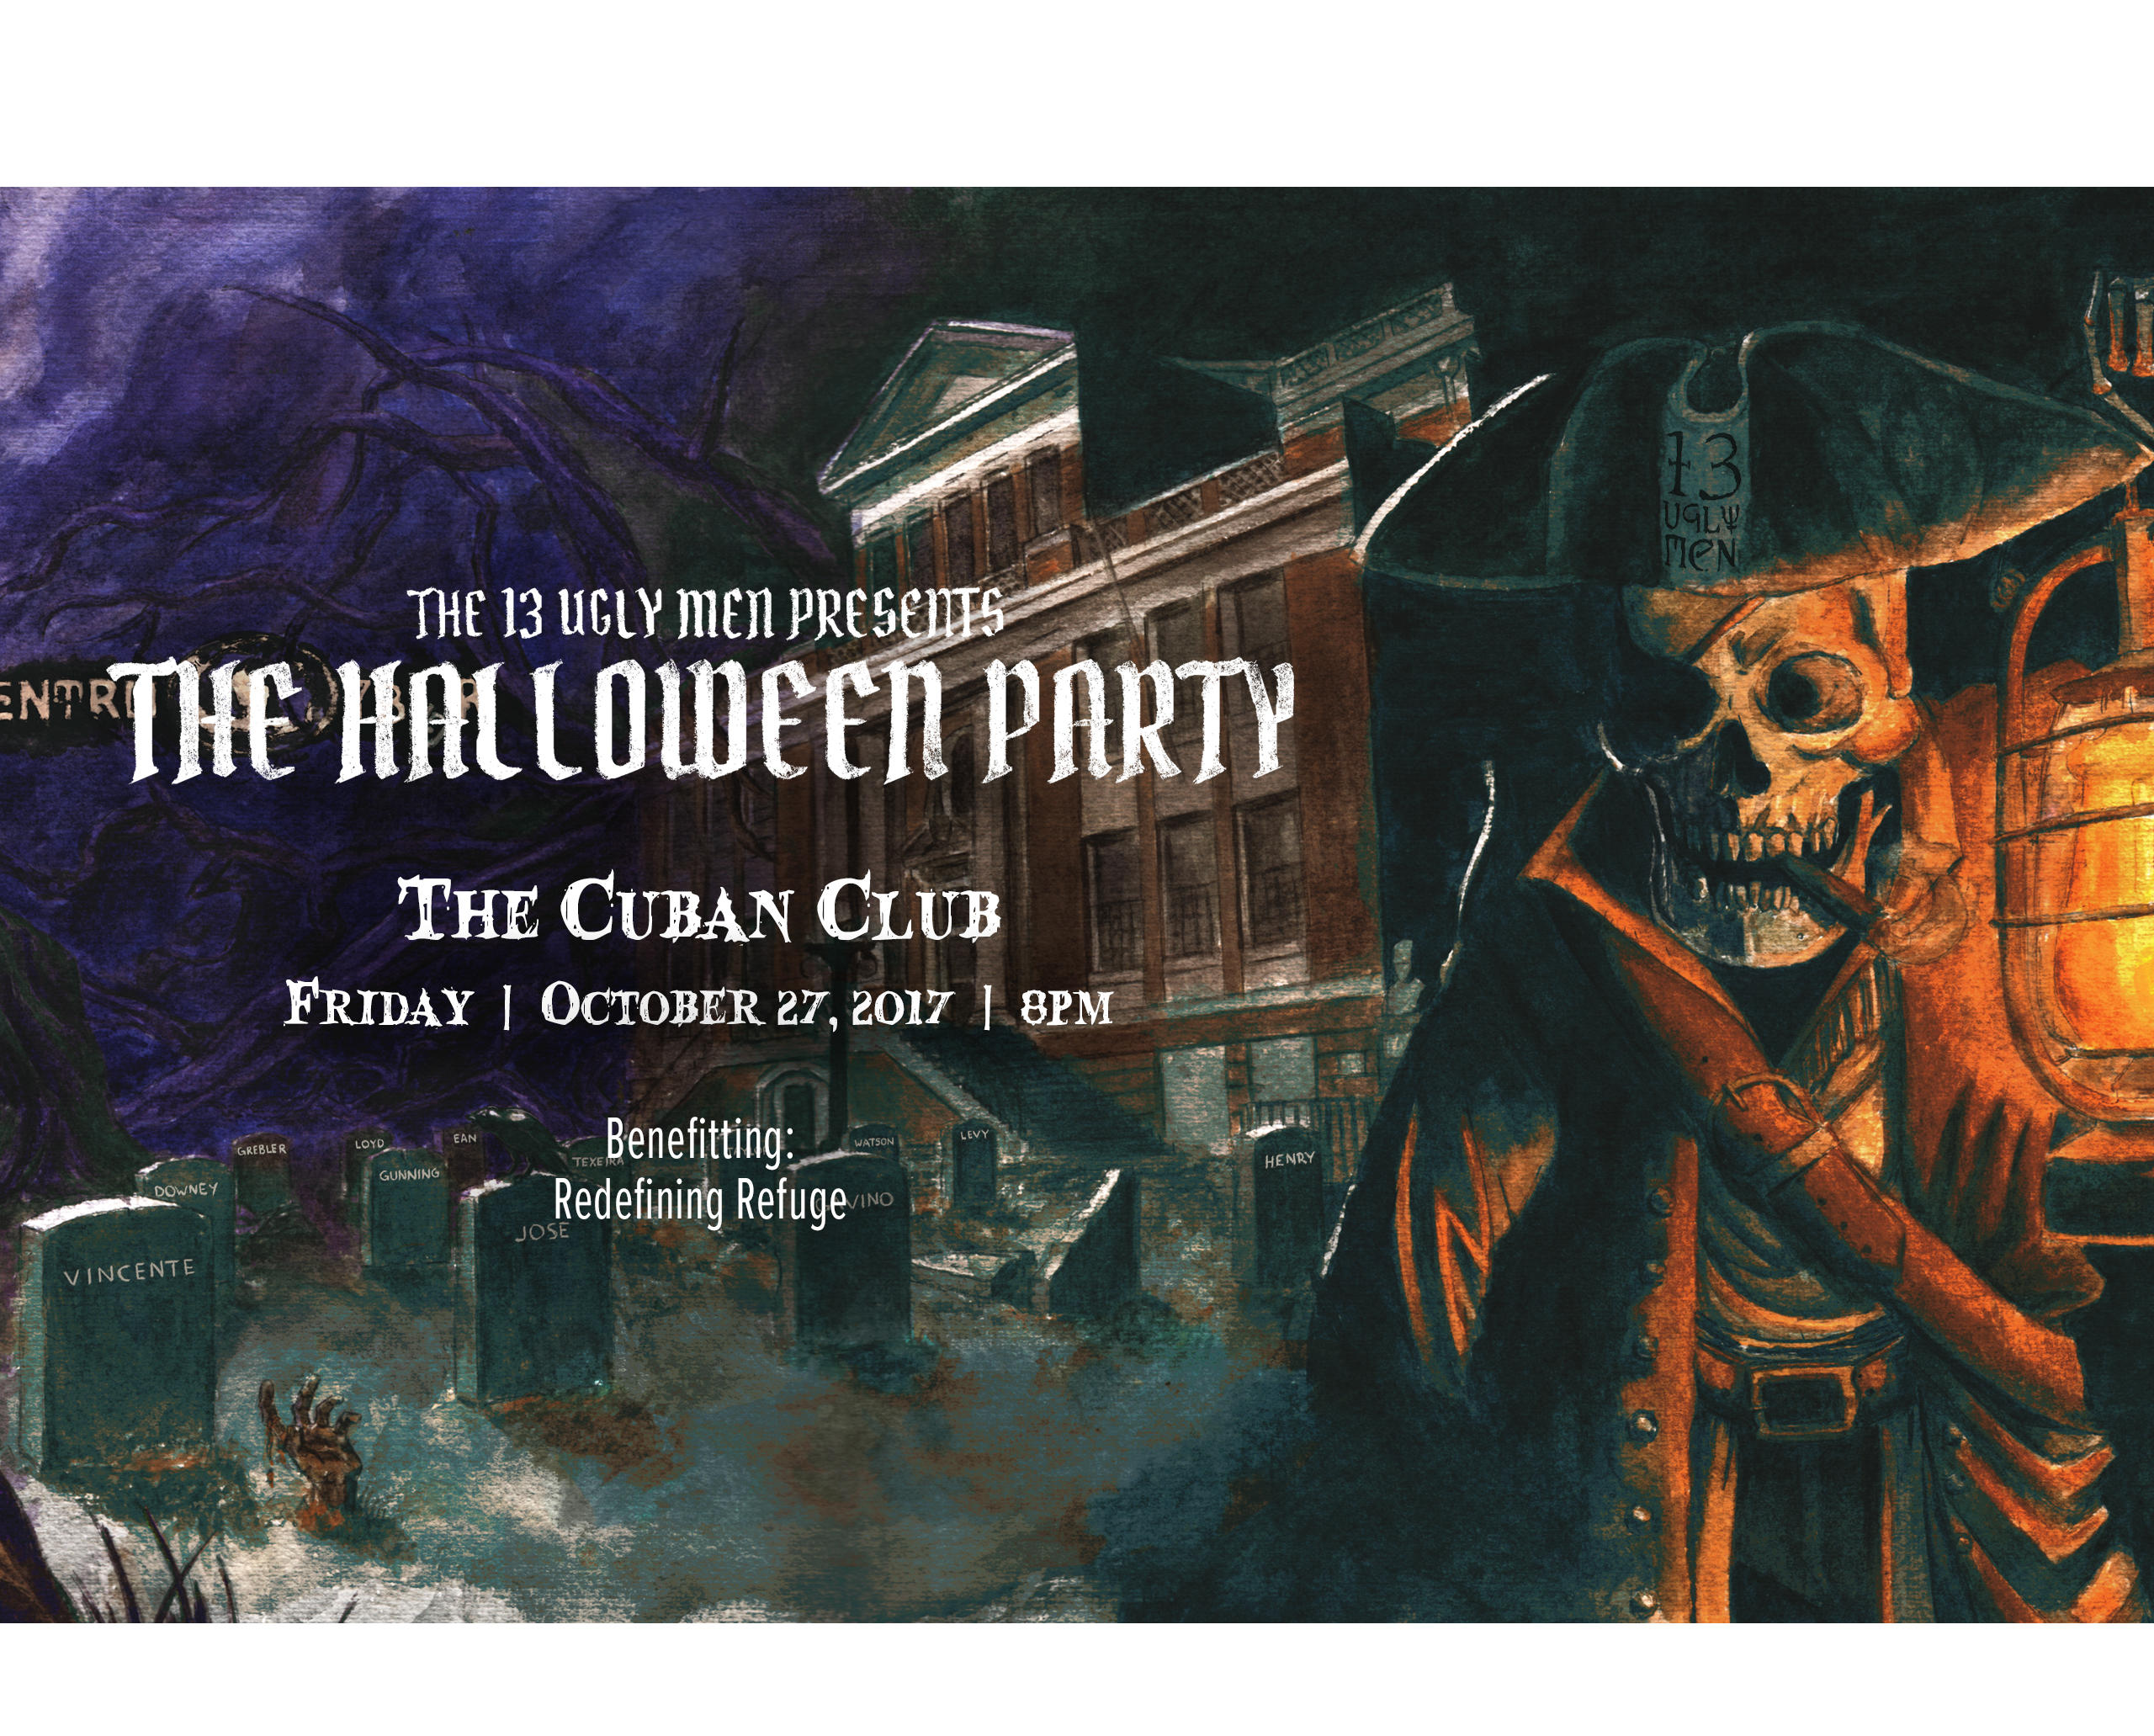 13 Ugly Men Presents 20th Annual Halloween Party